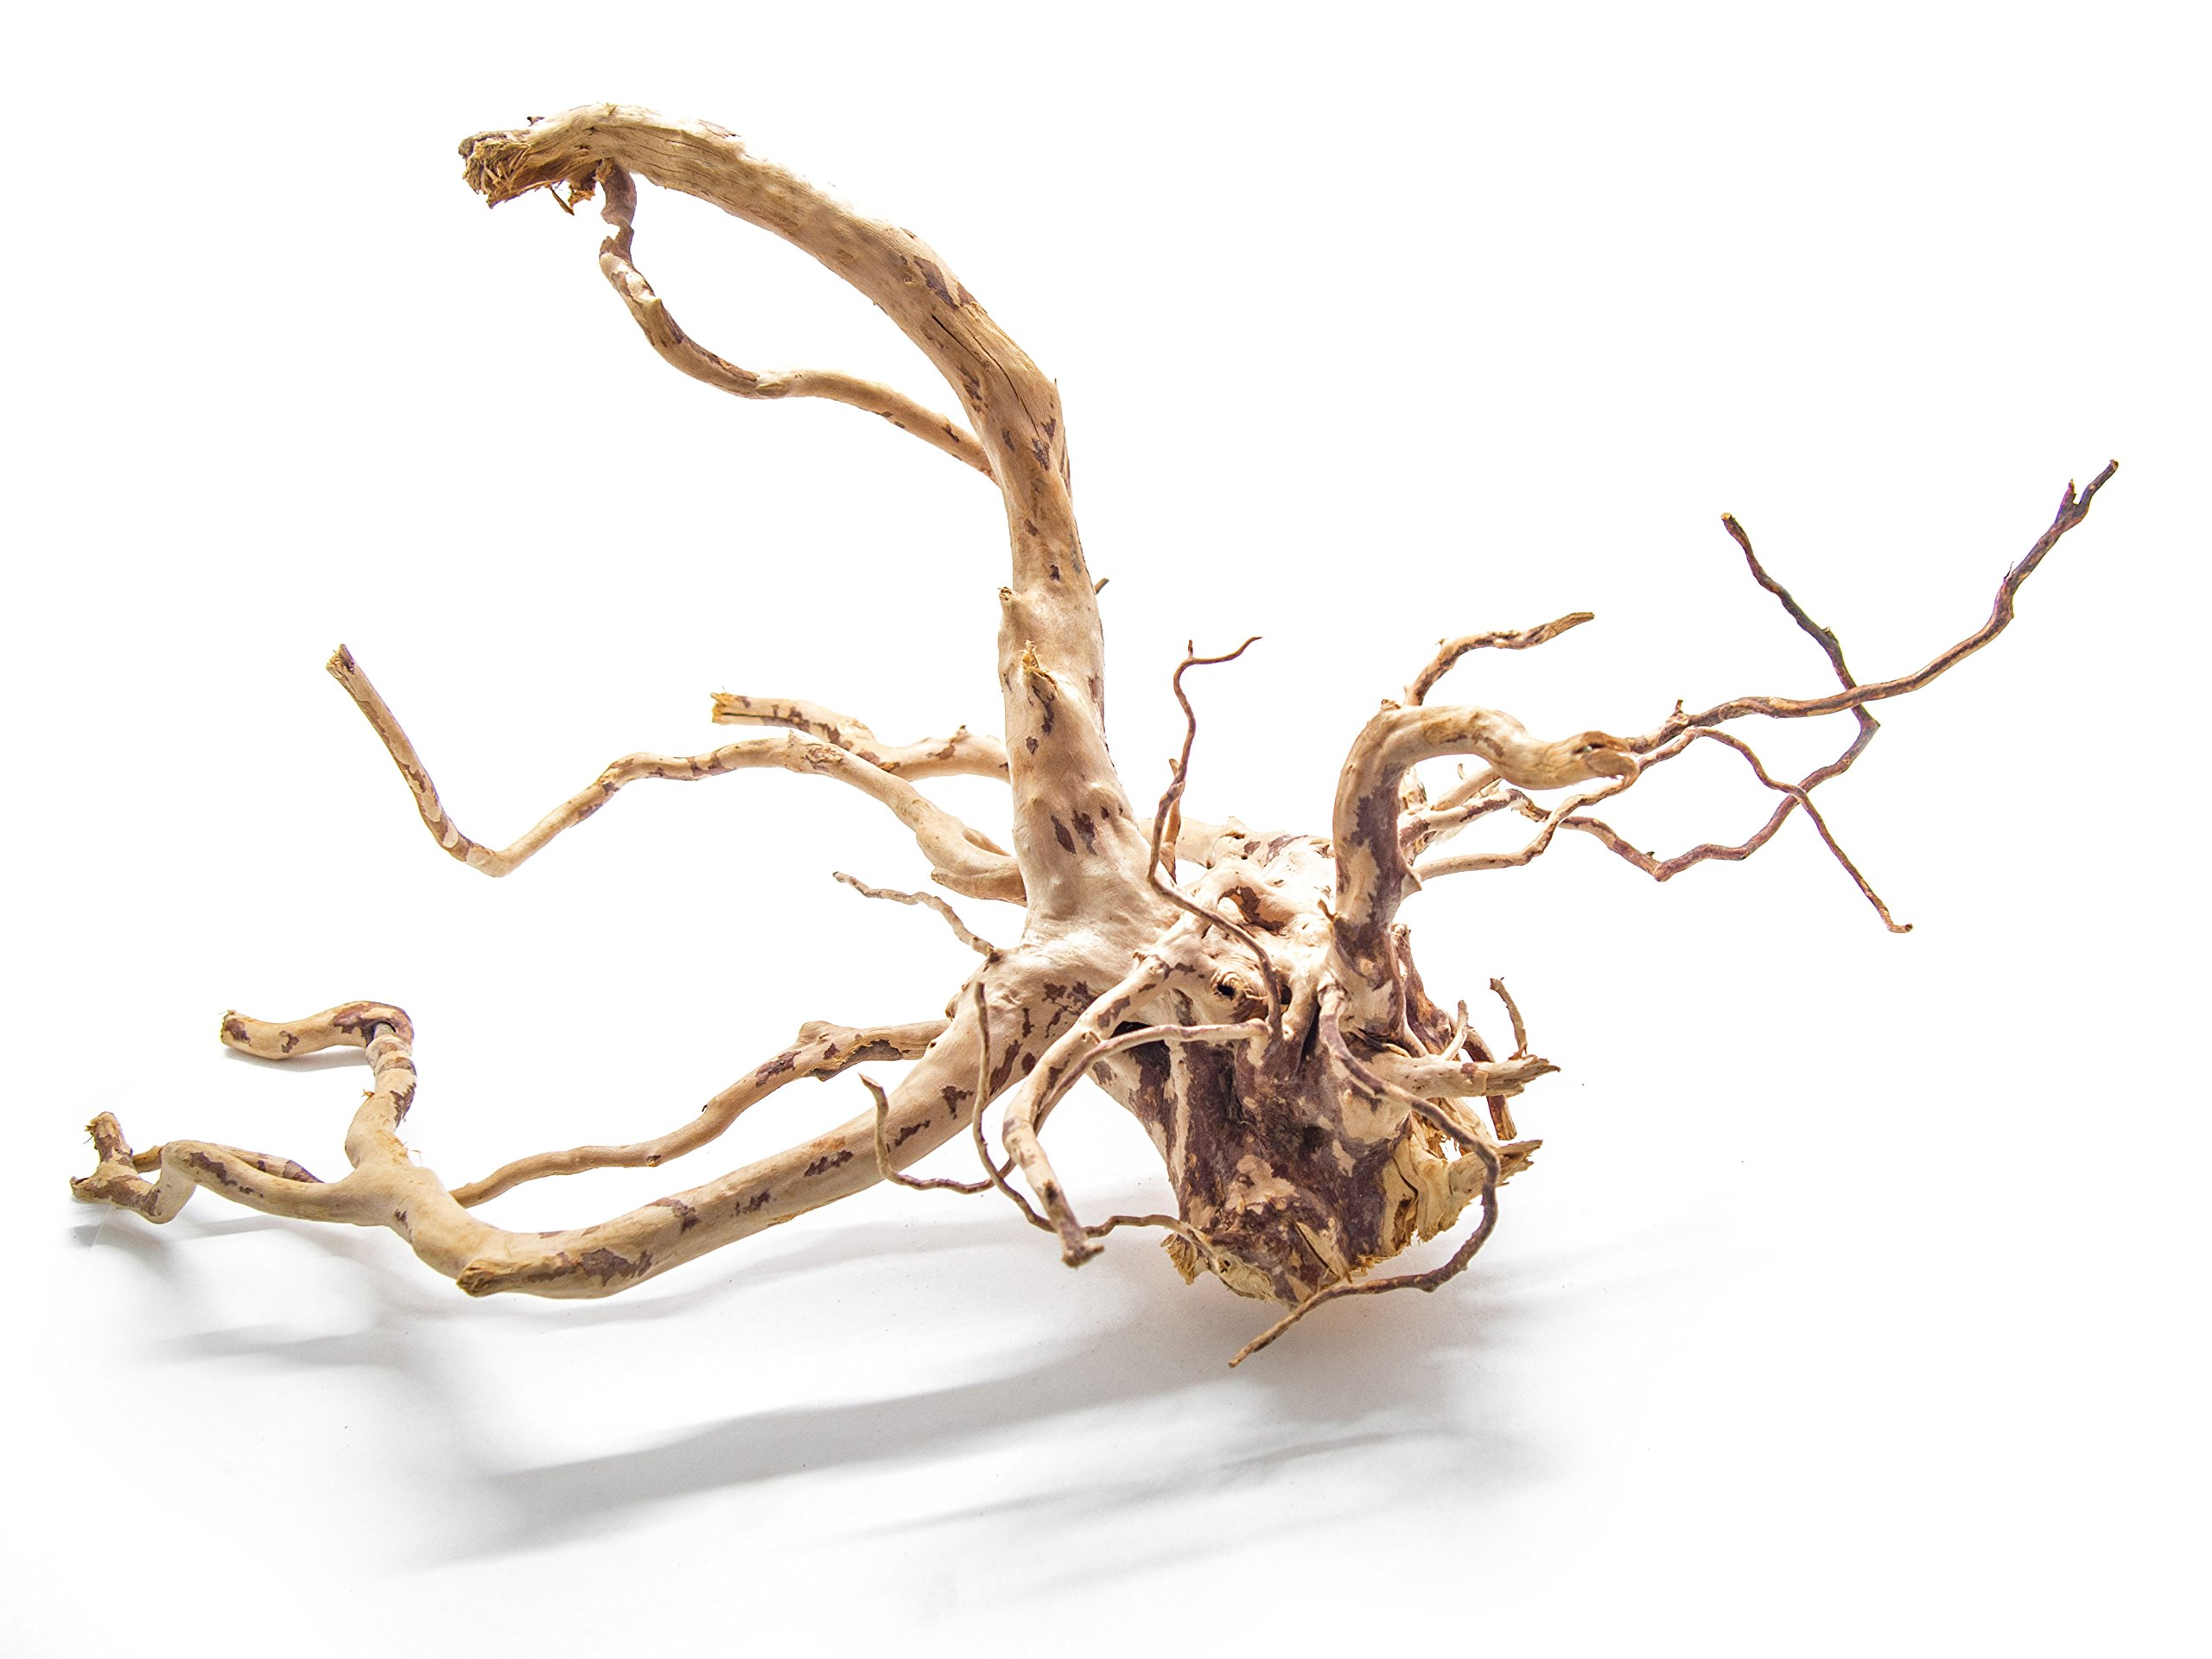 Aquatic Arts 1 X-Large Piece of Spider Wood aka Azalea Natural Aquarium Driftwood, 16-20''